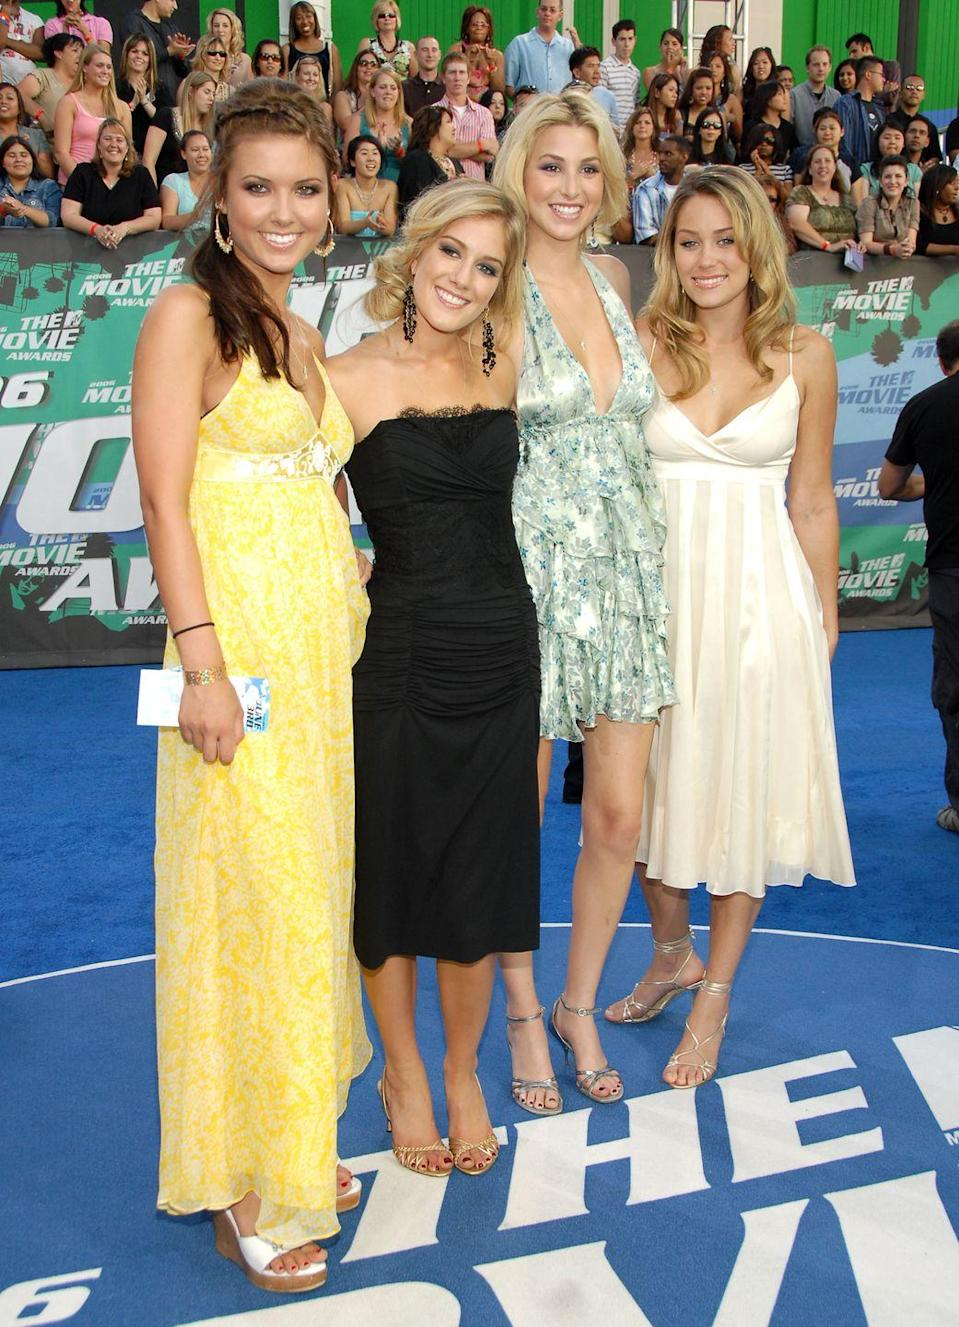 """<p>The original ladies of <a href=""""https://www.cosmopolitan.com/entertainment/celebs/a26411709/the-hills-cosmopolitan-cover-april/"""" rel=""""nofollow noopener"""" target=""""_blank"""" data-ylk=""""slk:MTV's soapy drama"""" class=""""link rapid-noclick-resp"""">MTV's soapy drama</a>, Audrina Patridge, Heidi Montag, Whitney Port, and Lauren Conrad, pose together at the 2006 MTV Movie Awards. For six seasons, cameras followed the sparkly 20-somethings and their v, v L.A. lives. </p>"""